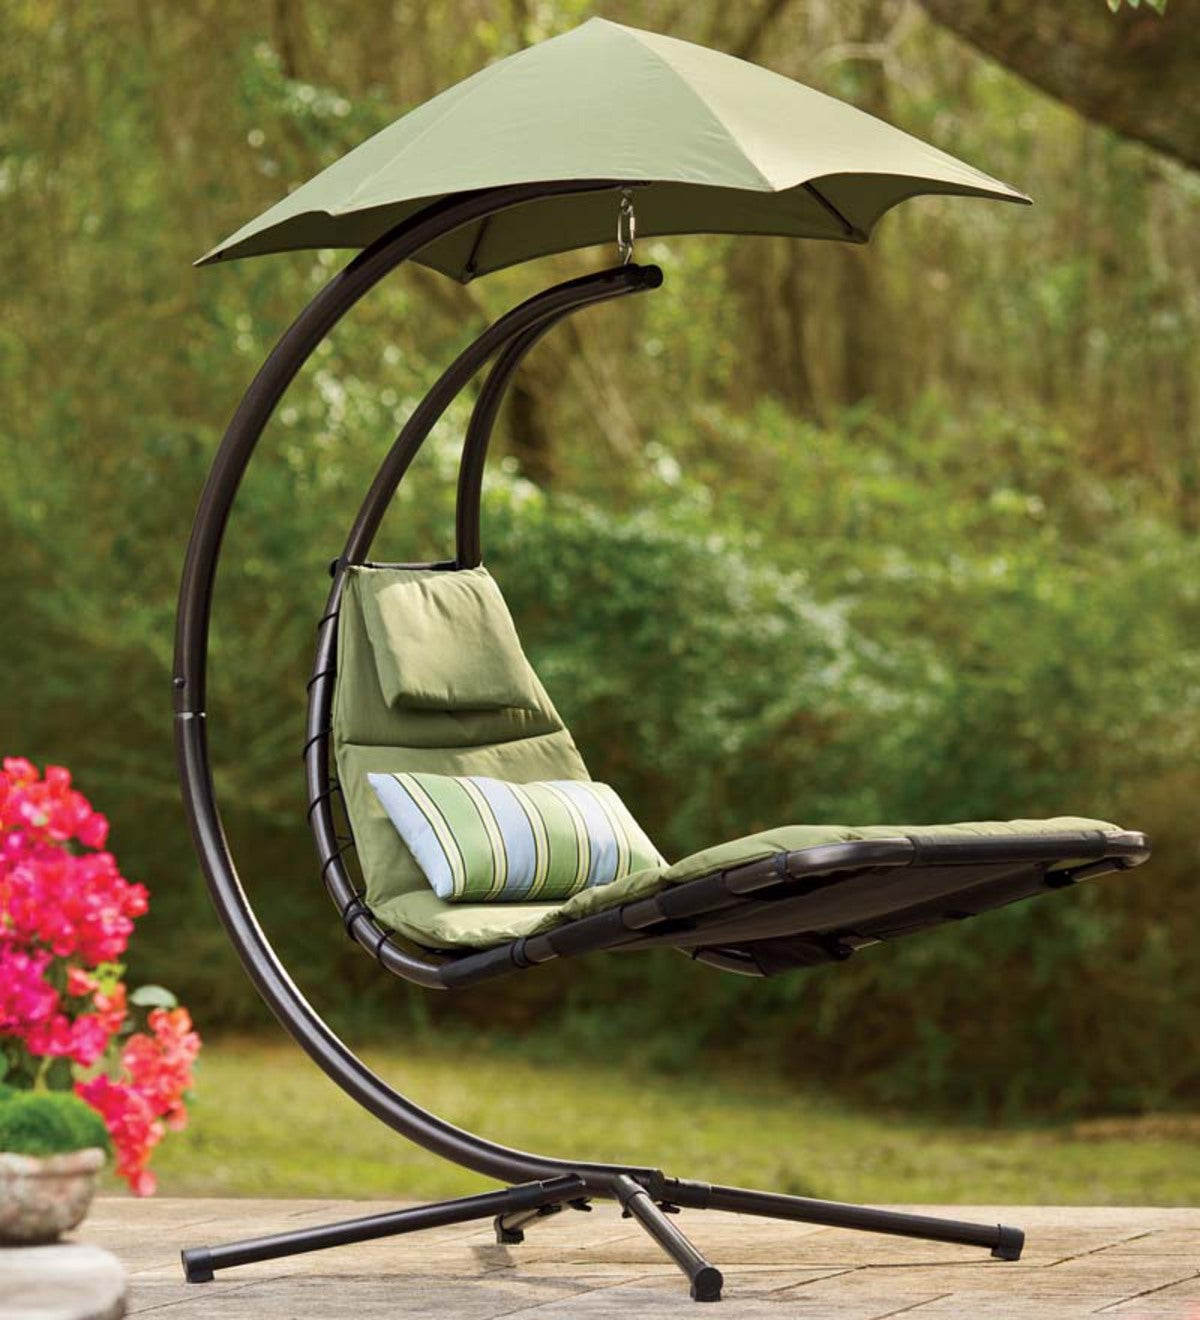 Dream Chair Suspended Lounge Chair With Umbrella Blue